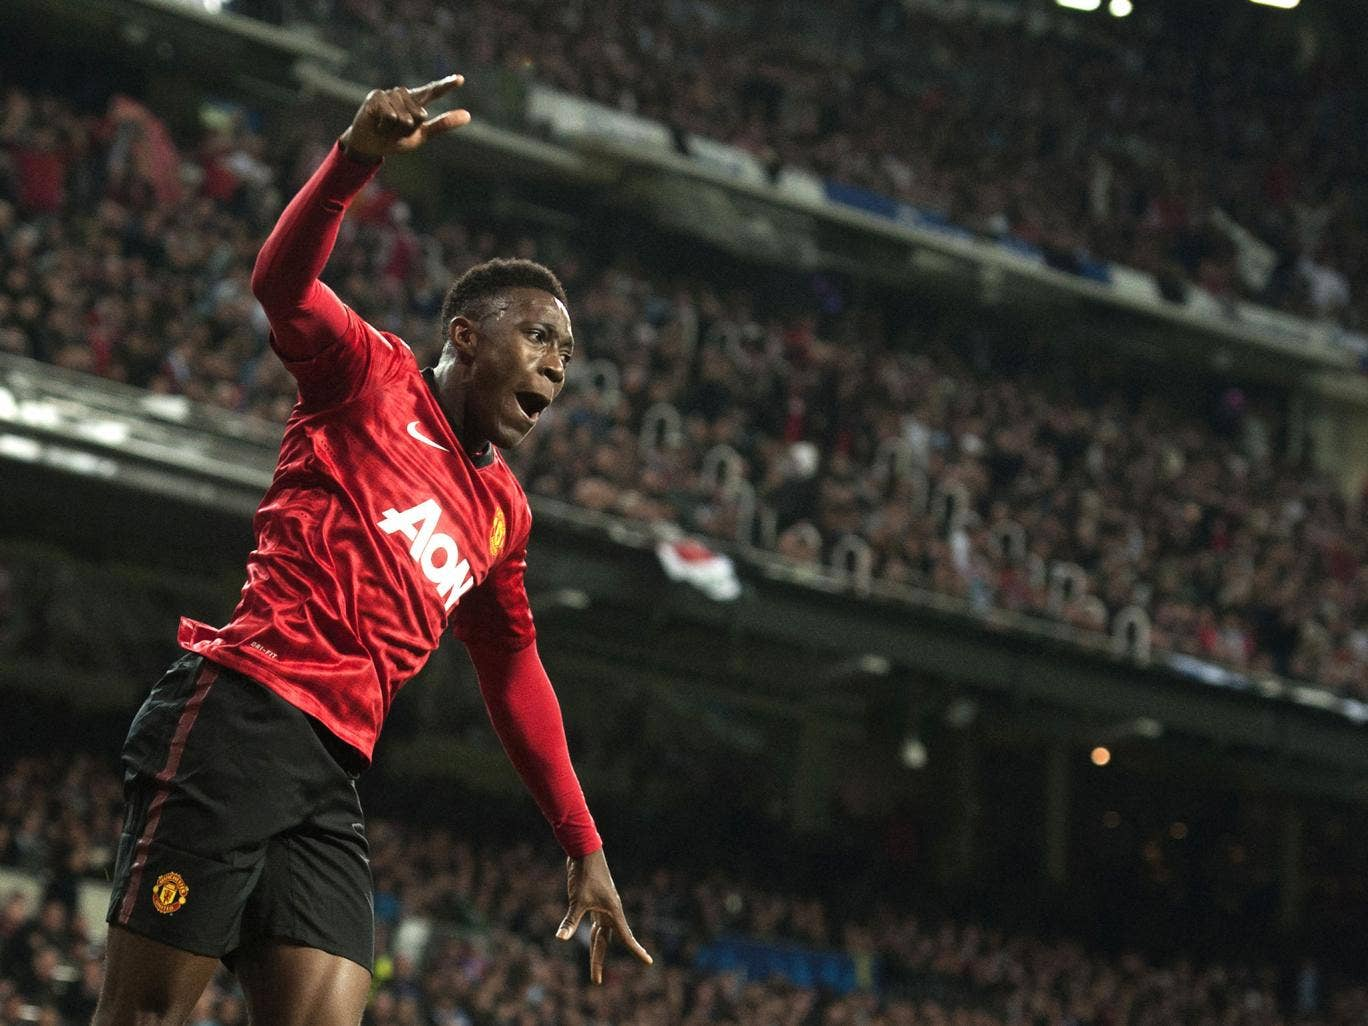 Danny Welbeck powered home the header that set United up for an encouraging 1-1 draw